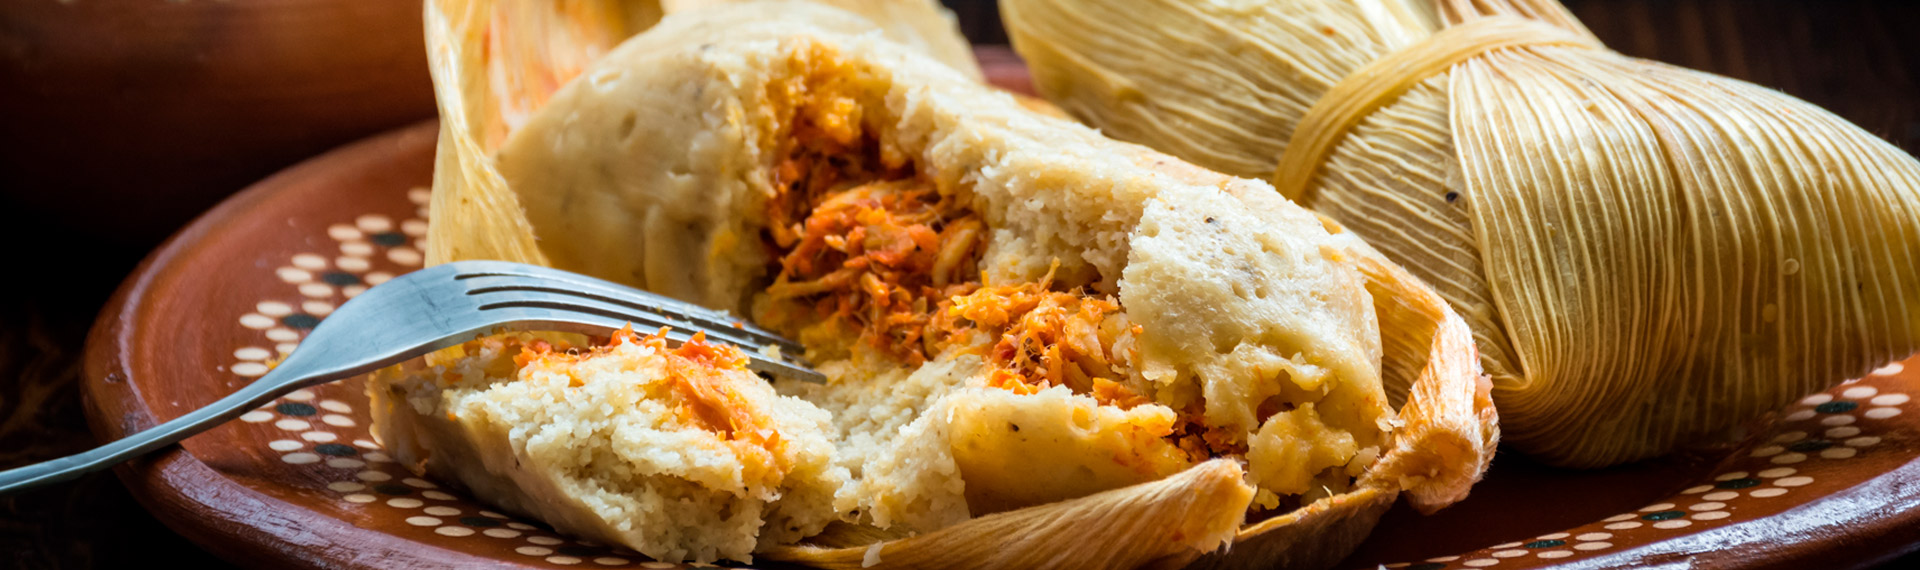 Mexican Tamales, an exquisite tradition